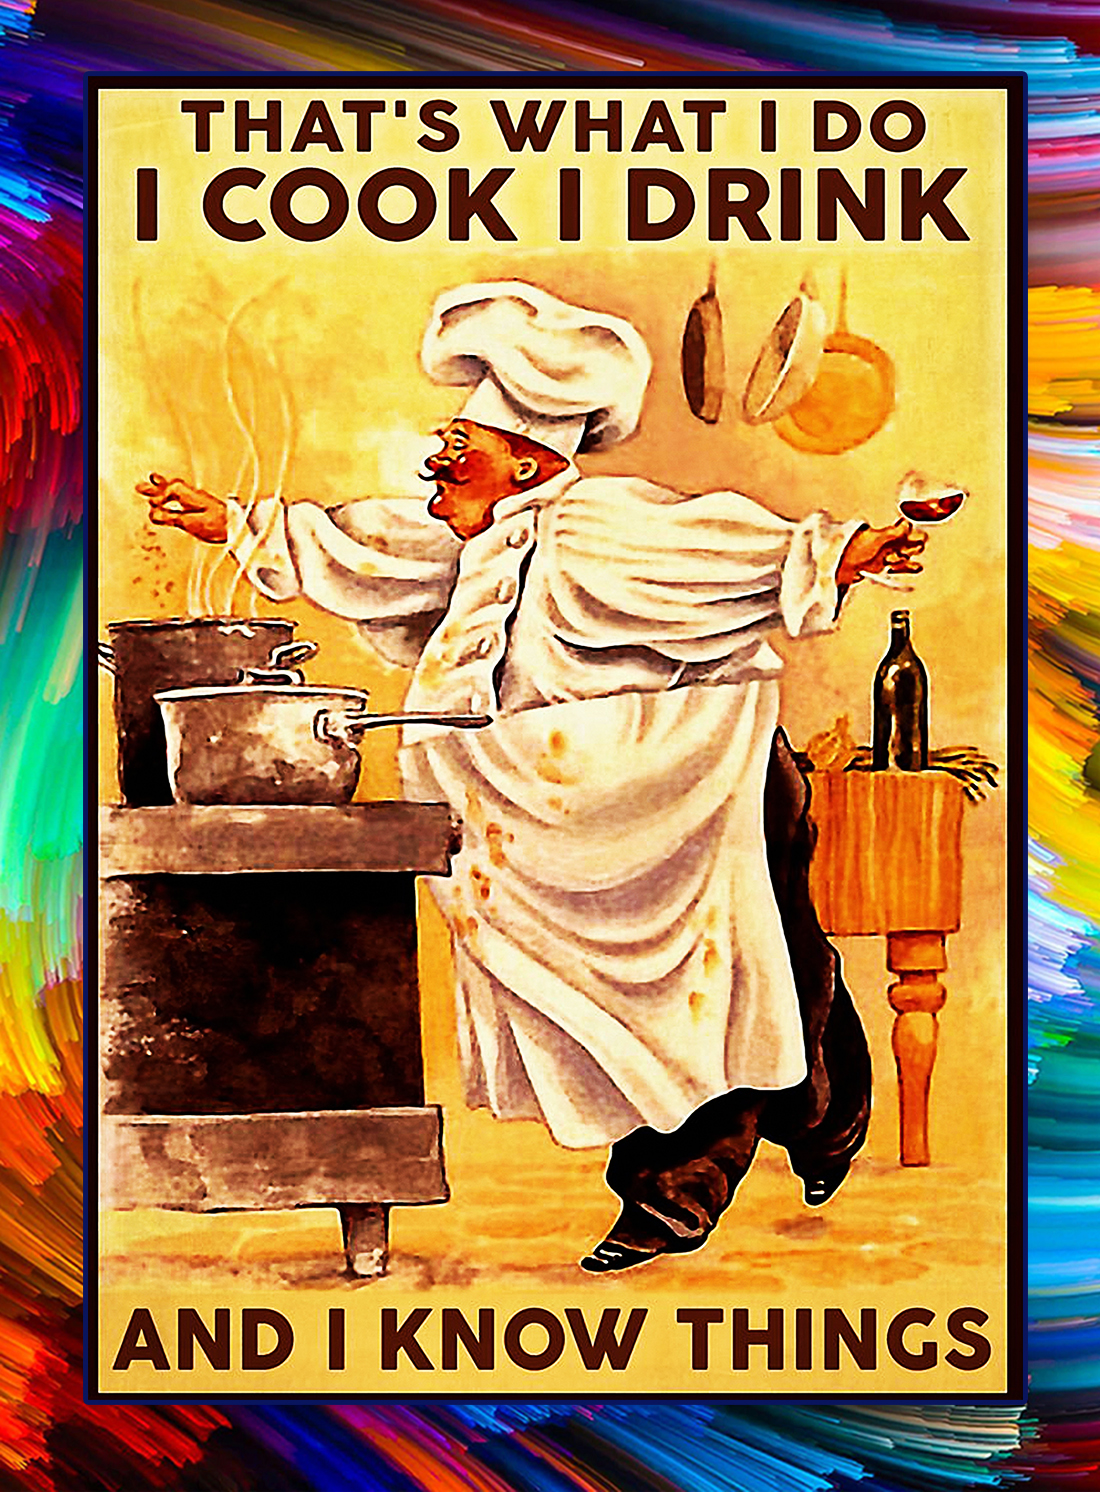 That's what i do i cook i drink and i know things chef poster - A4